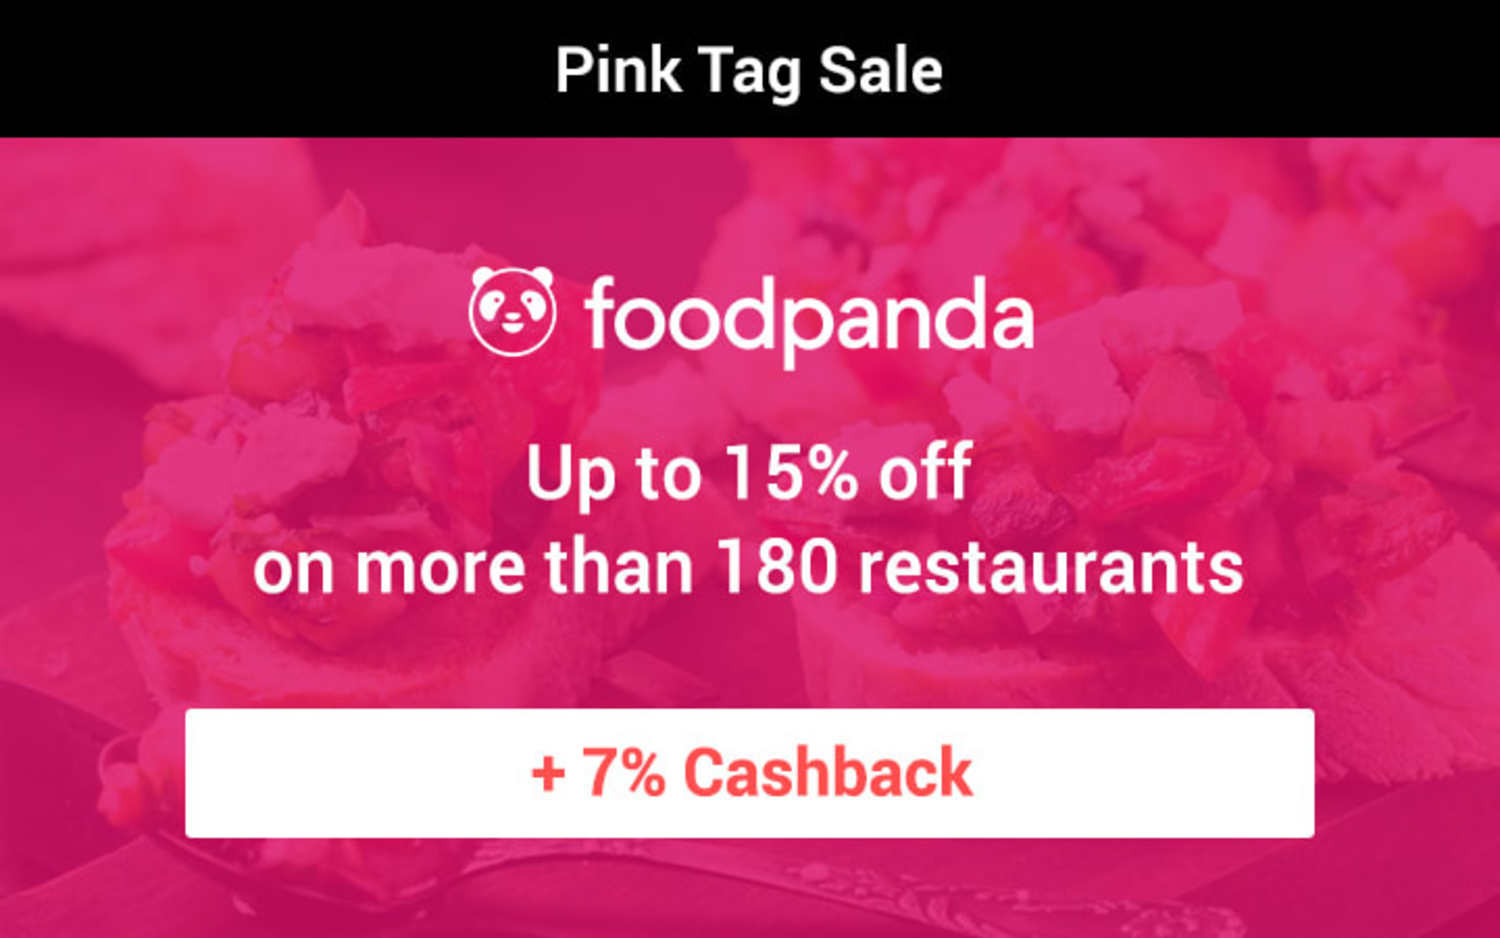 foodpanda | Pink Tag Sale: Up to 15% off on more than 180 restaurants + 7% Cashback